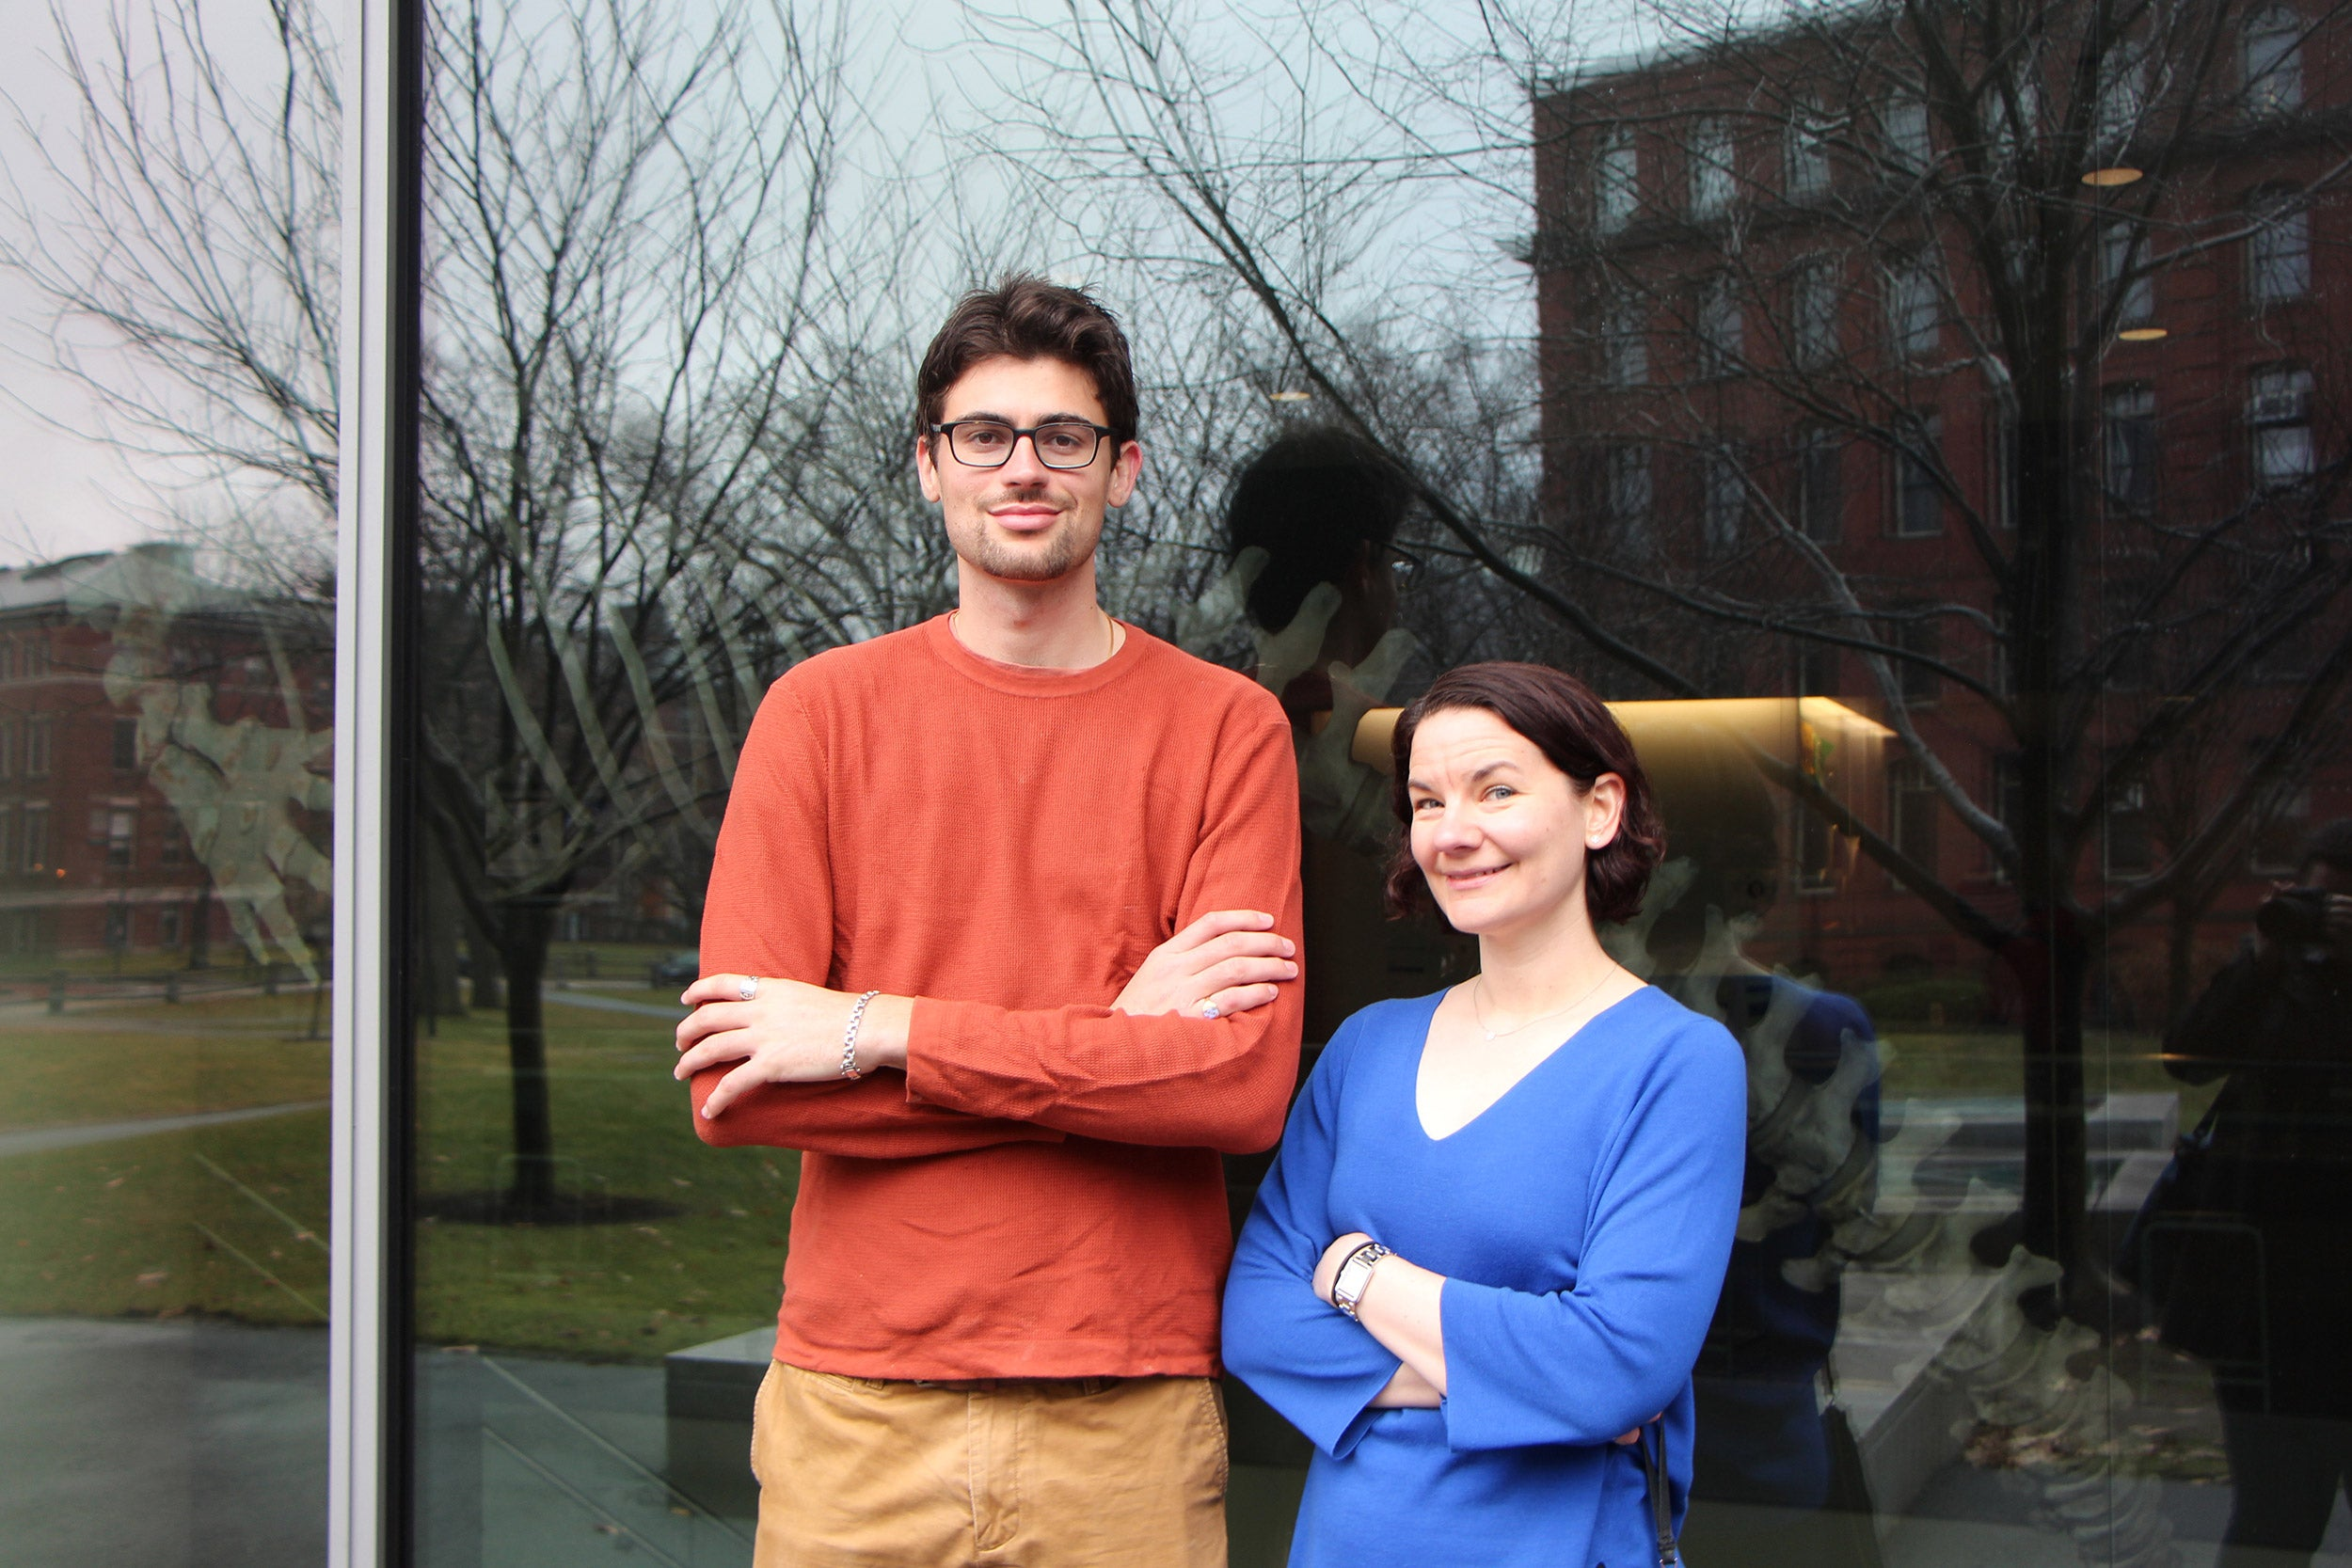 Two researchers standing in front of a building.